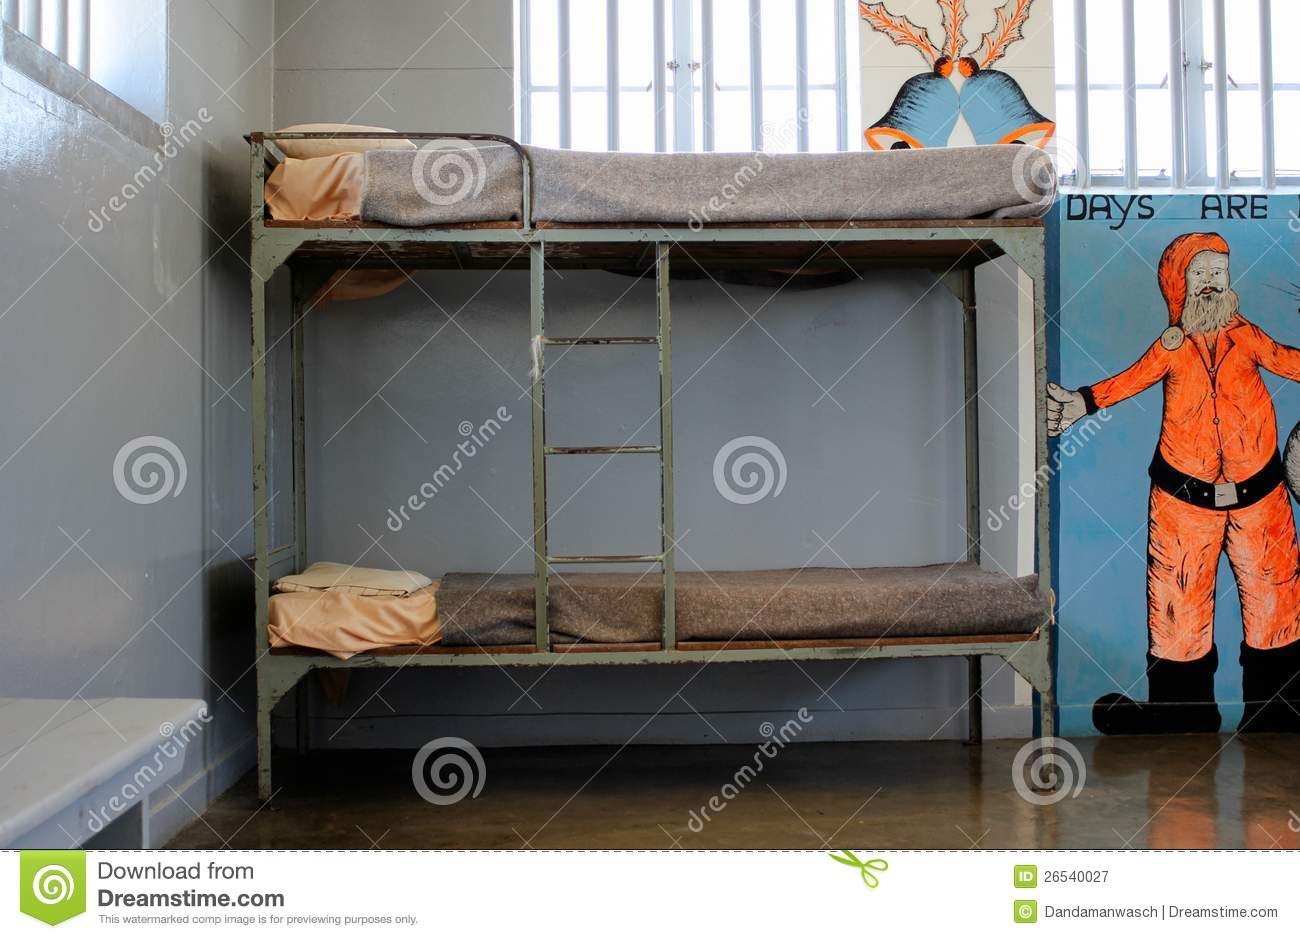 Prison Cell Of Robben Island Prison Stock Image - Image of ...